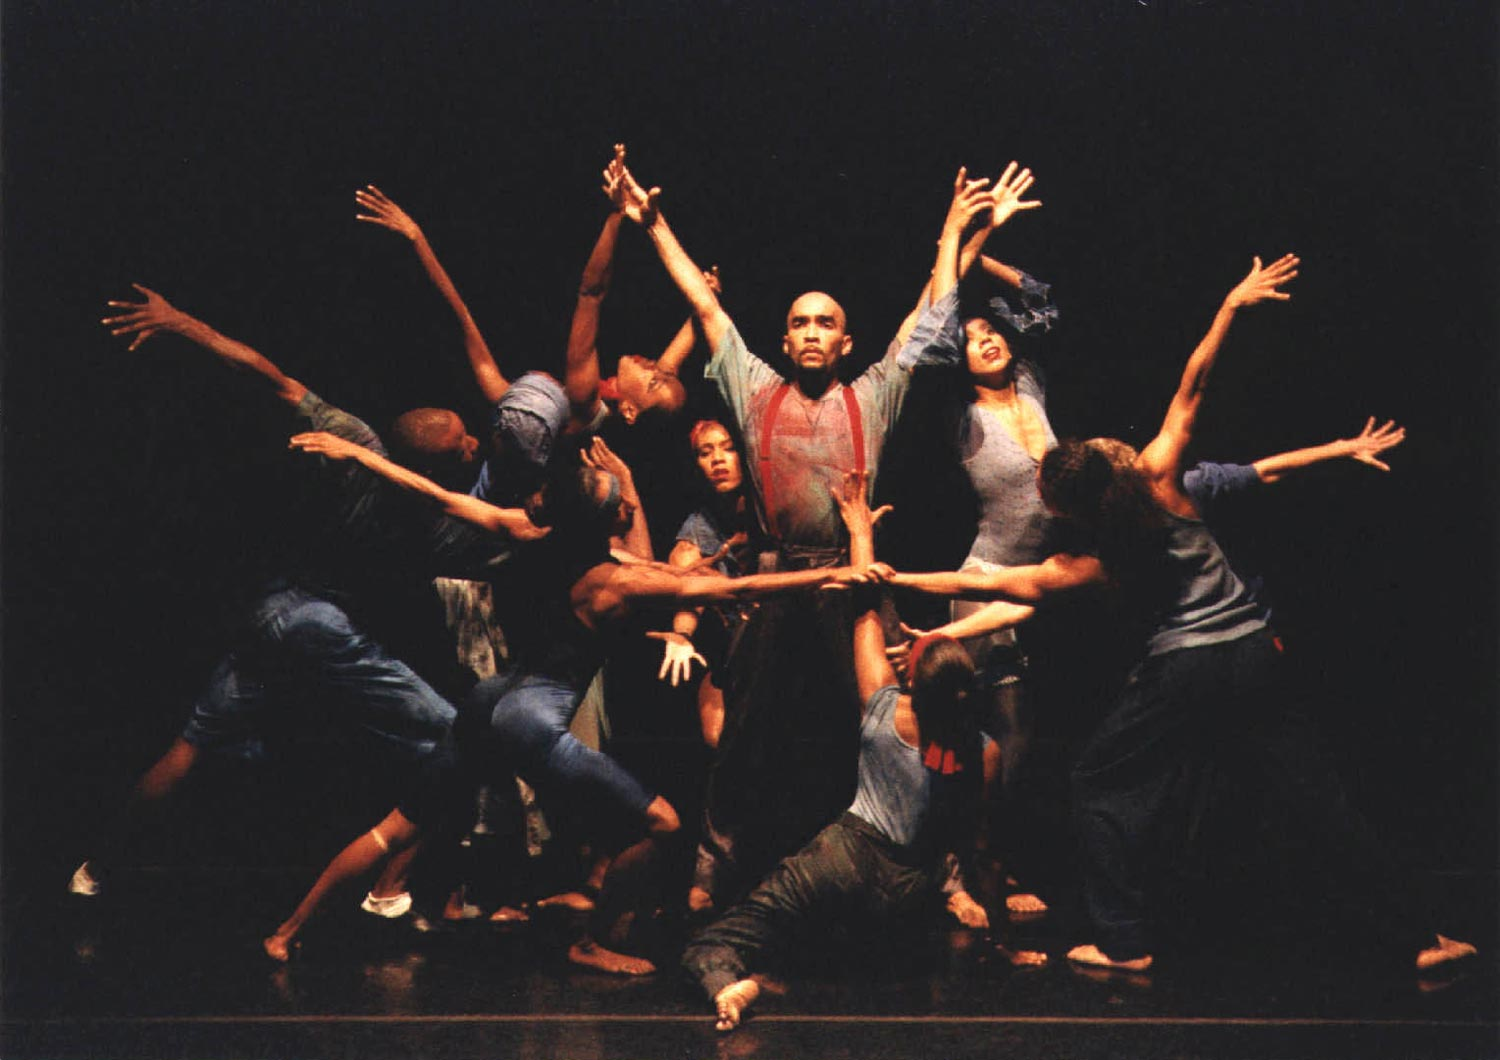 Footprints, choreographed by Monika Lawrence. Photograph by Denis Valentine